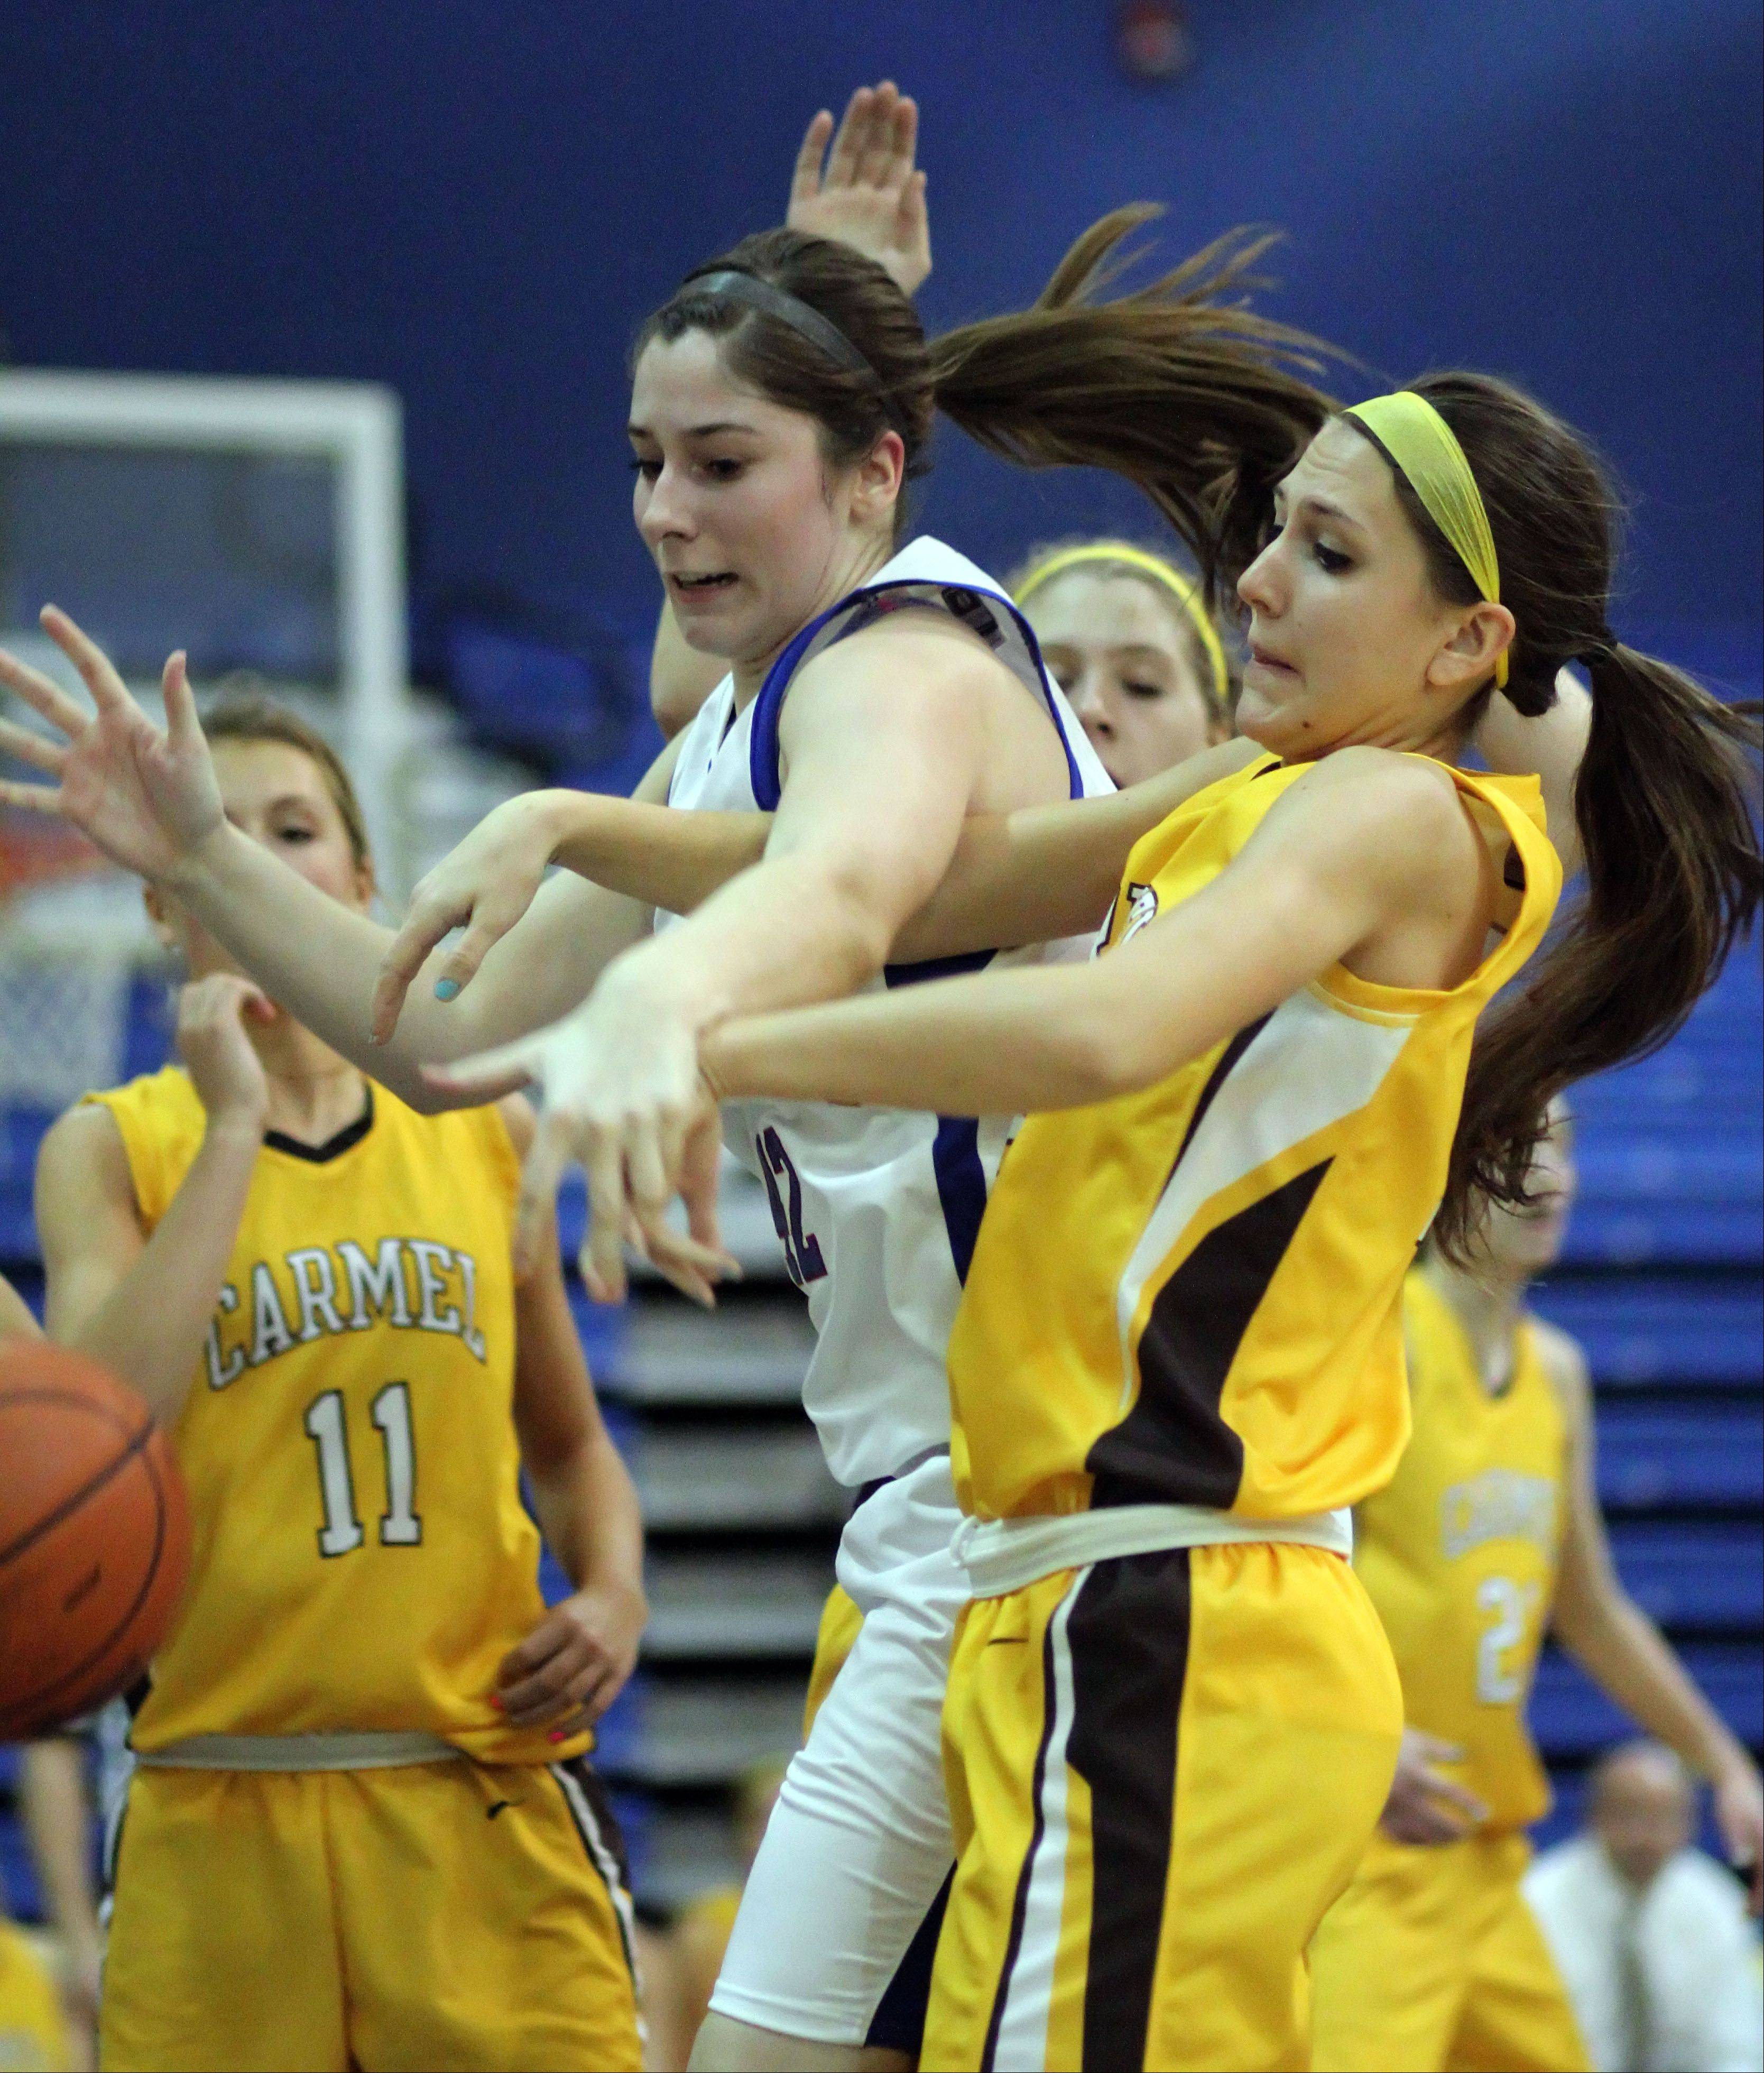 Lakes' Therese McMahon, left, and Carmel's Paige Gauthier fight for the rebound during Monday's basketball game in Lake Villa.